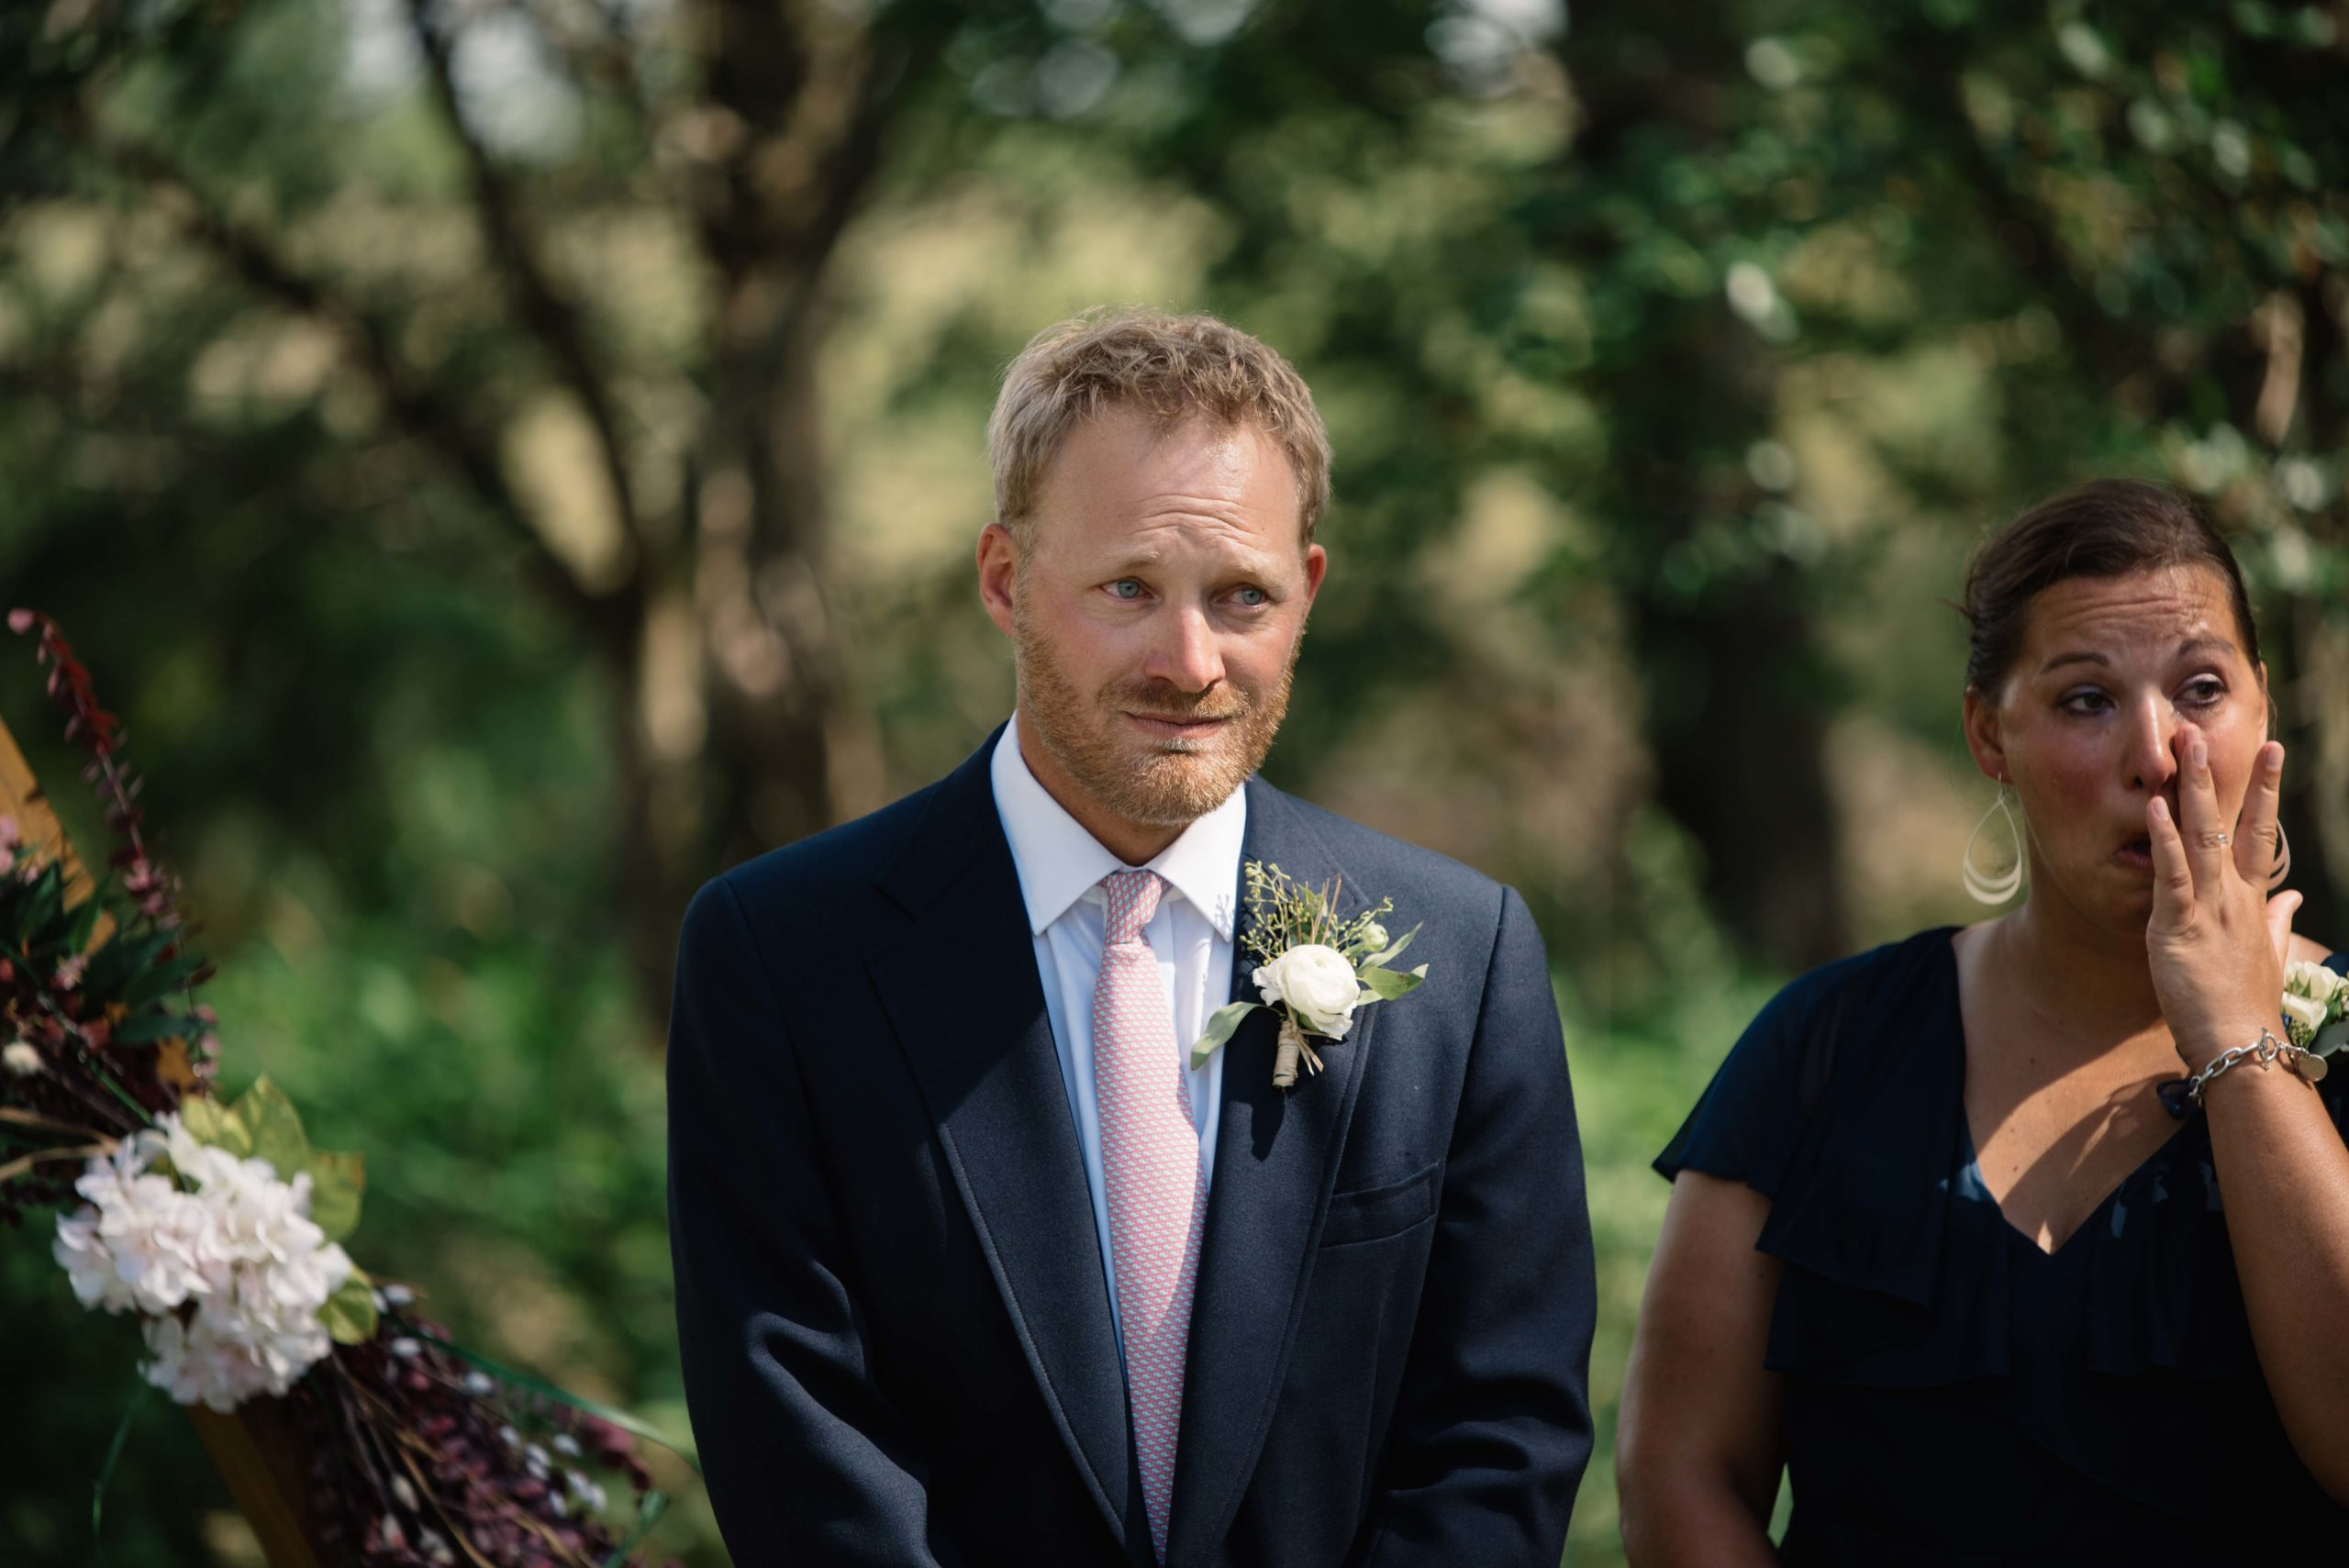 groom crying as he sees his bride for the first time outdoor Iowa wedding ceremony schafer century barn wedding venue